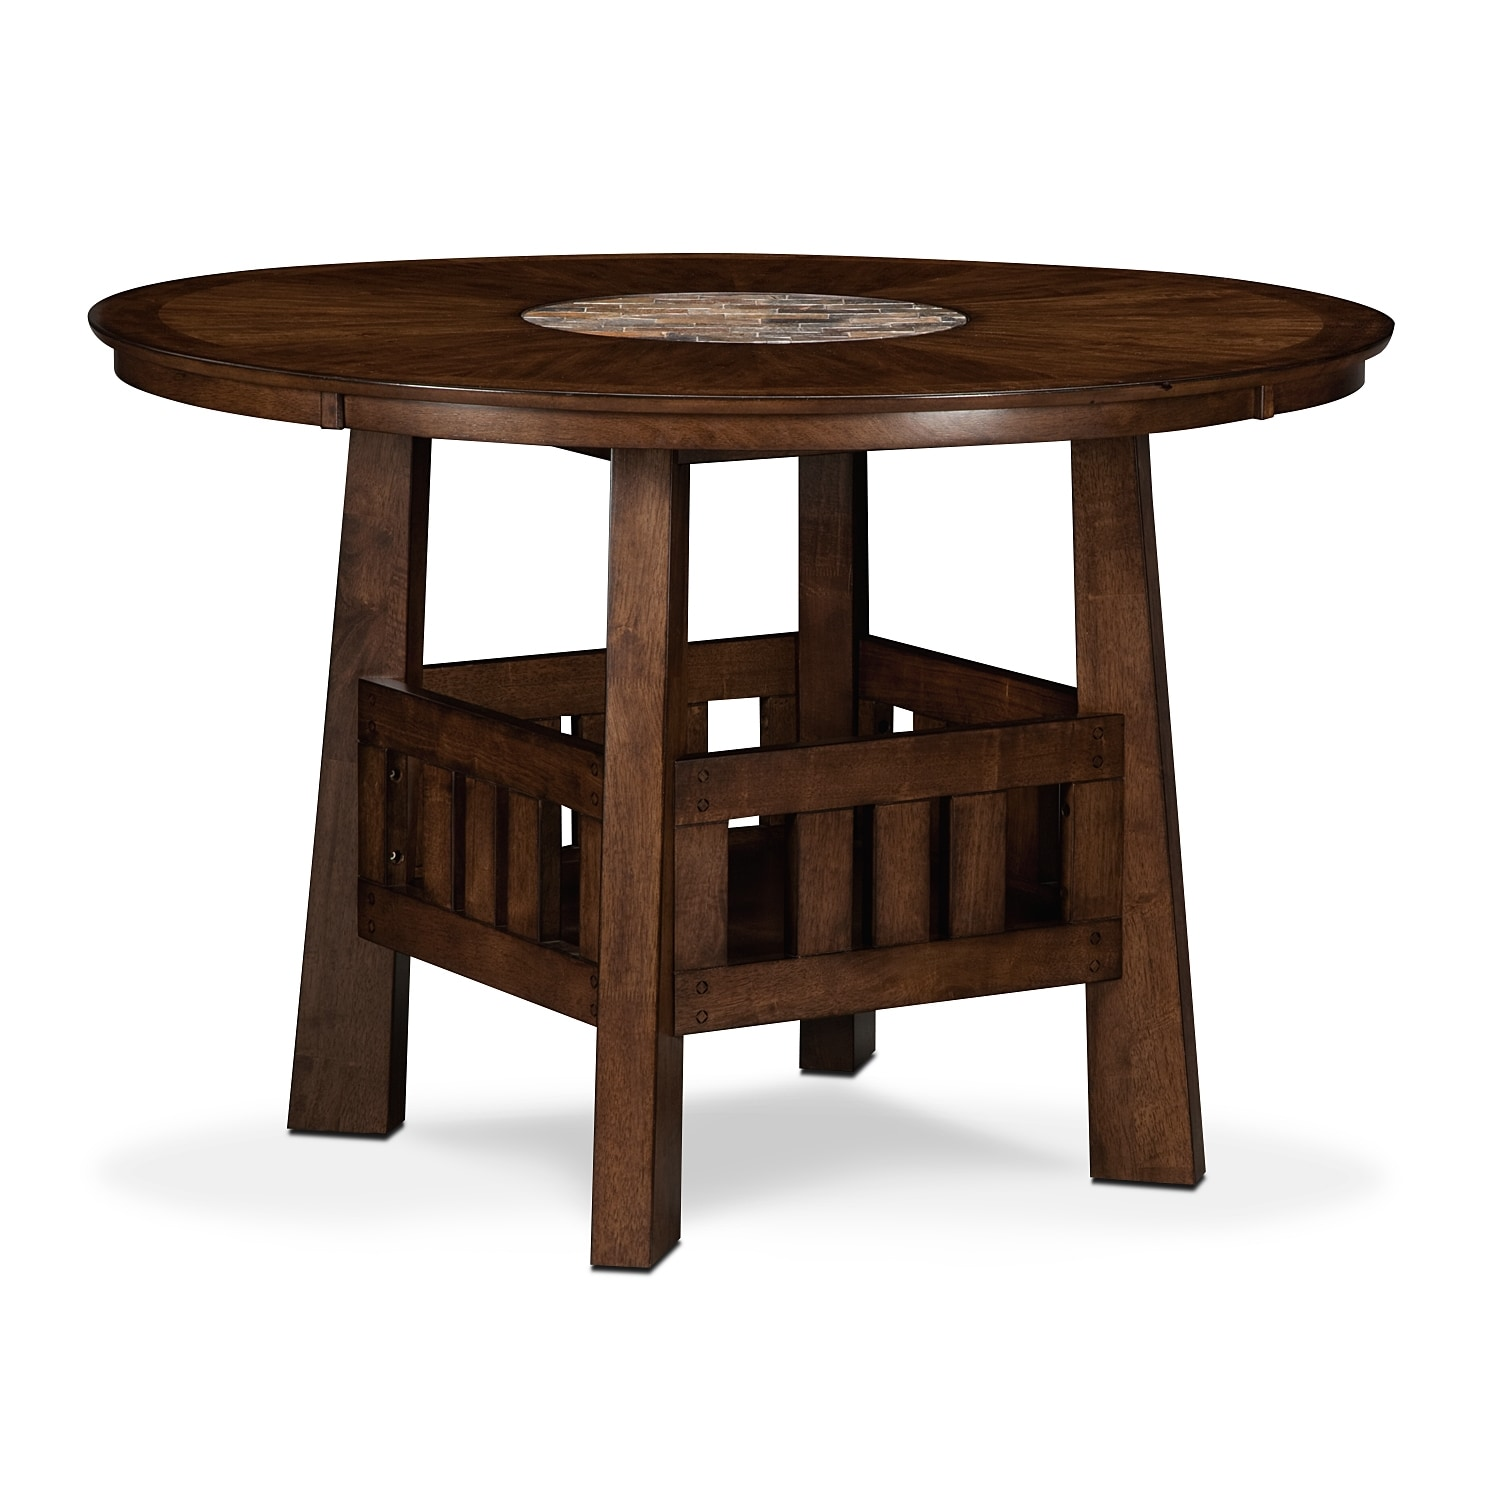 Dining Room Furniture - Harbor Pointe Counter-Height Table - Oak